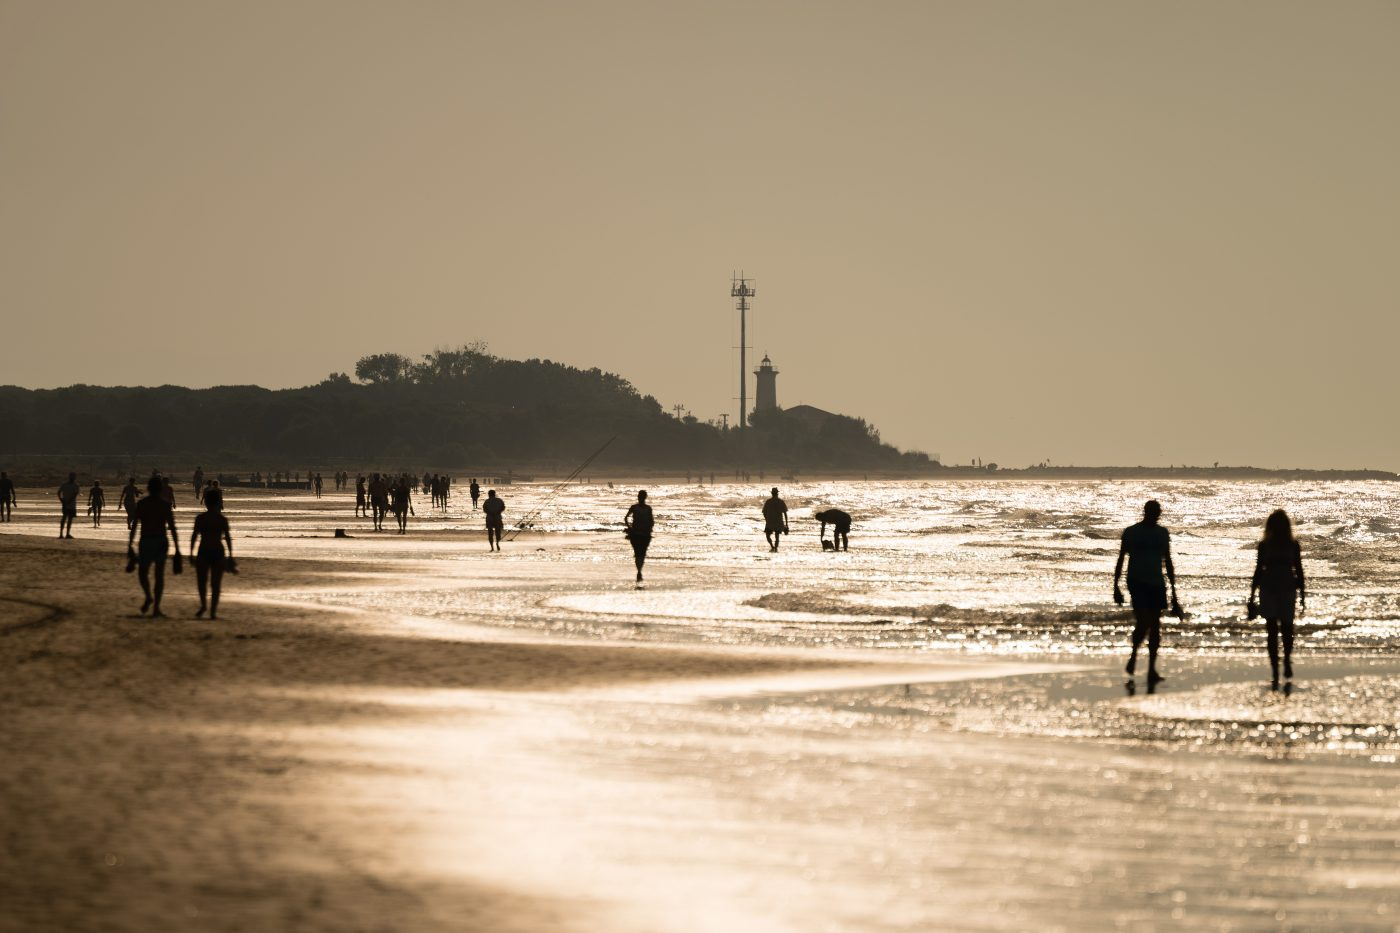 Visit Bibione Beach in Italy to get off the beaten path